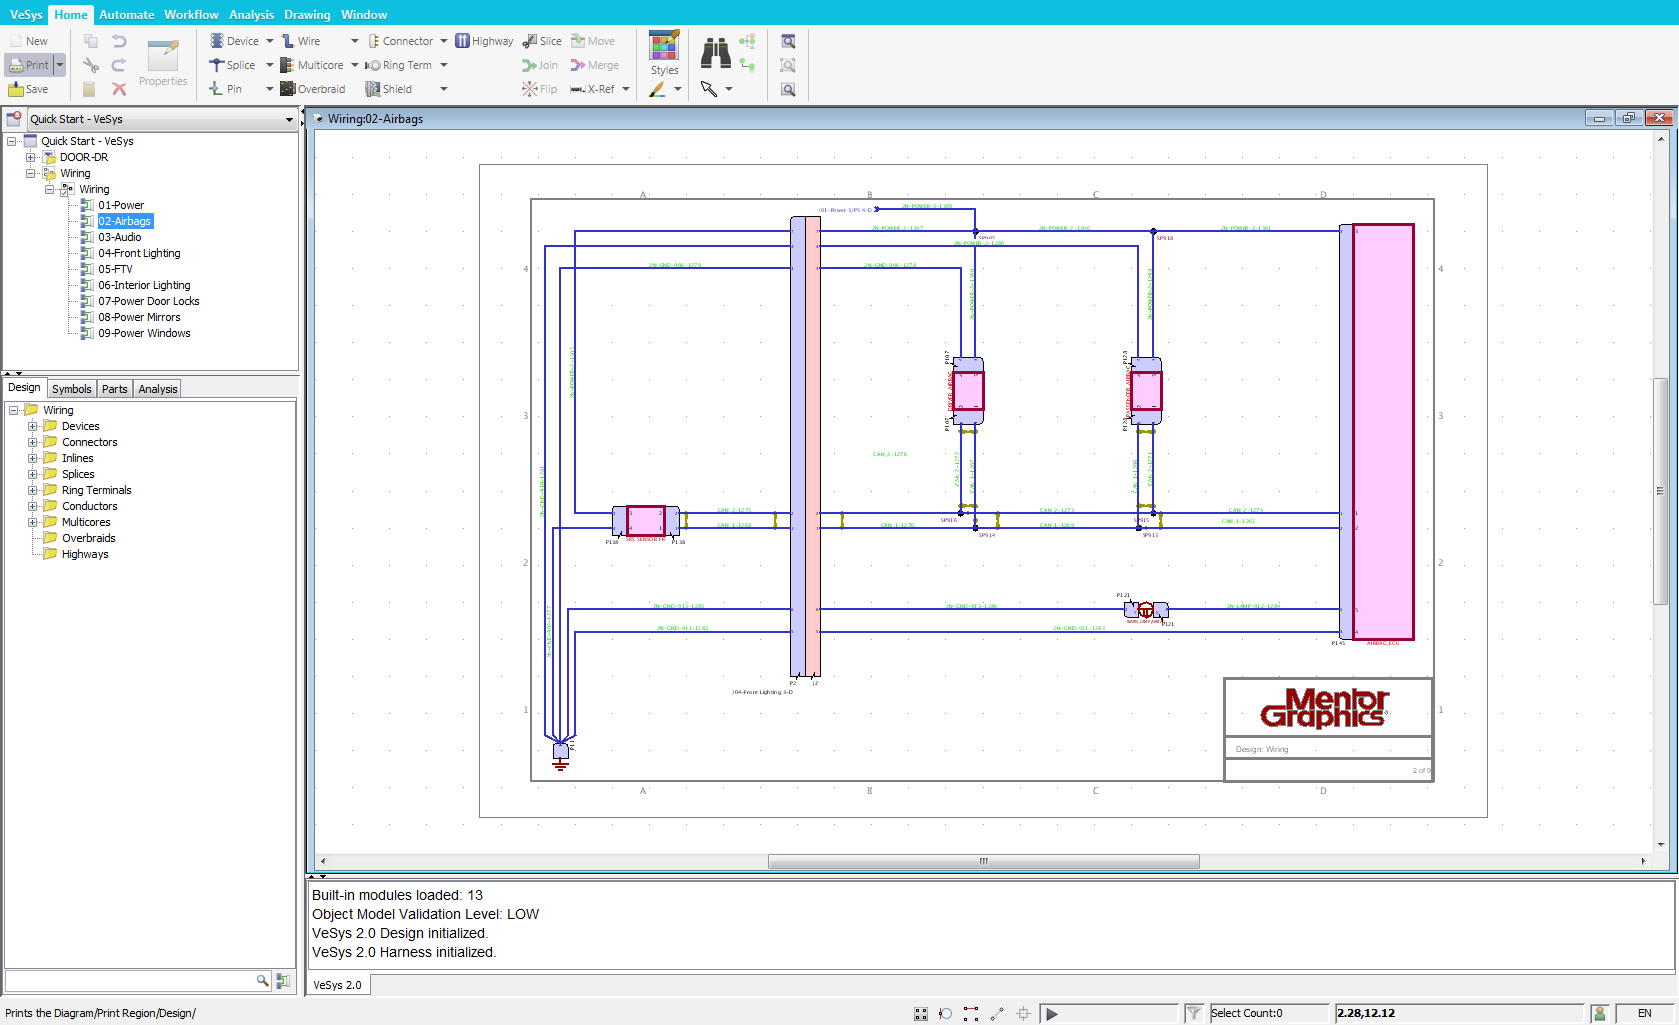 Vesys Design Mentor Graphics Learning Wiring Schematics Is Graphical Authoring Environment For Creating Vehicle Diagrams Via An Intuitive User Interface And Electrically Intelligent Symbols